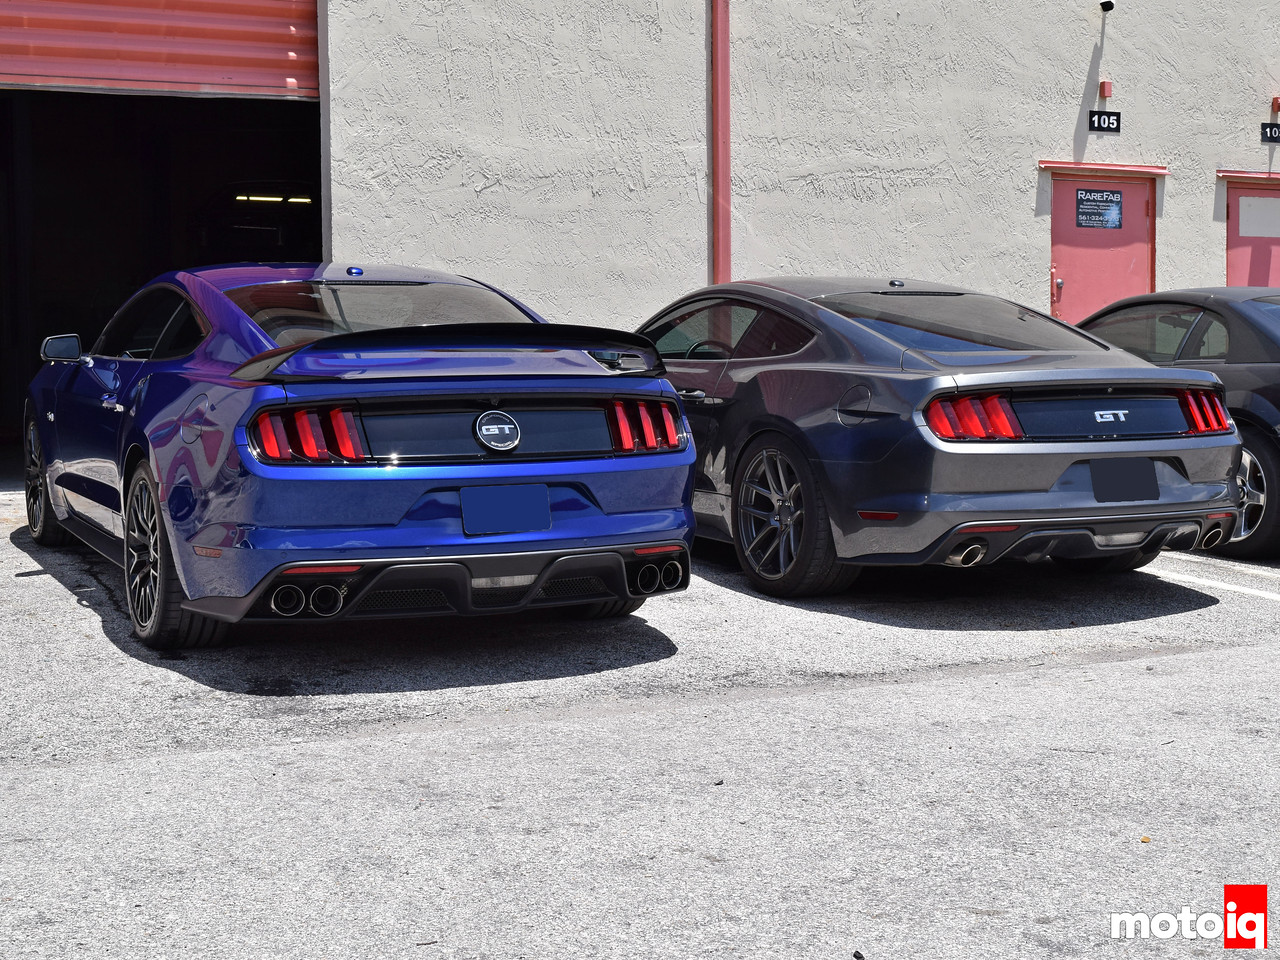 Shelby GT350 lower valence and R wing vs stock